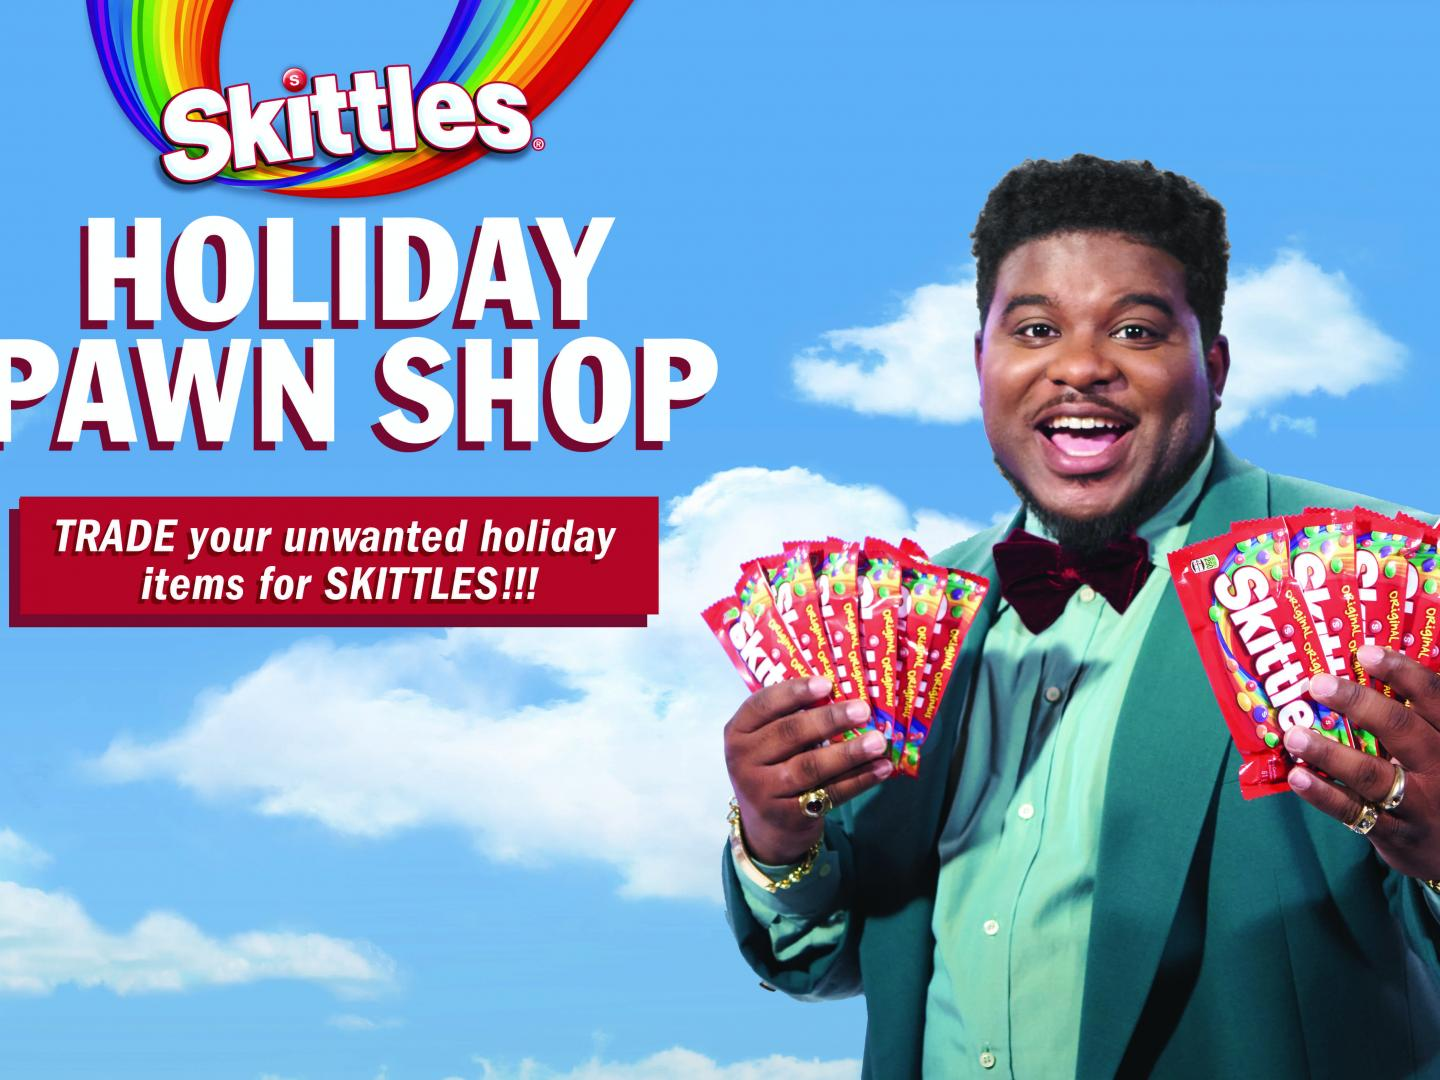 Skittles Holiday Pawn Shop Thumbnail